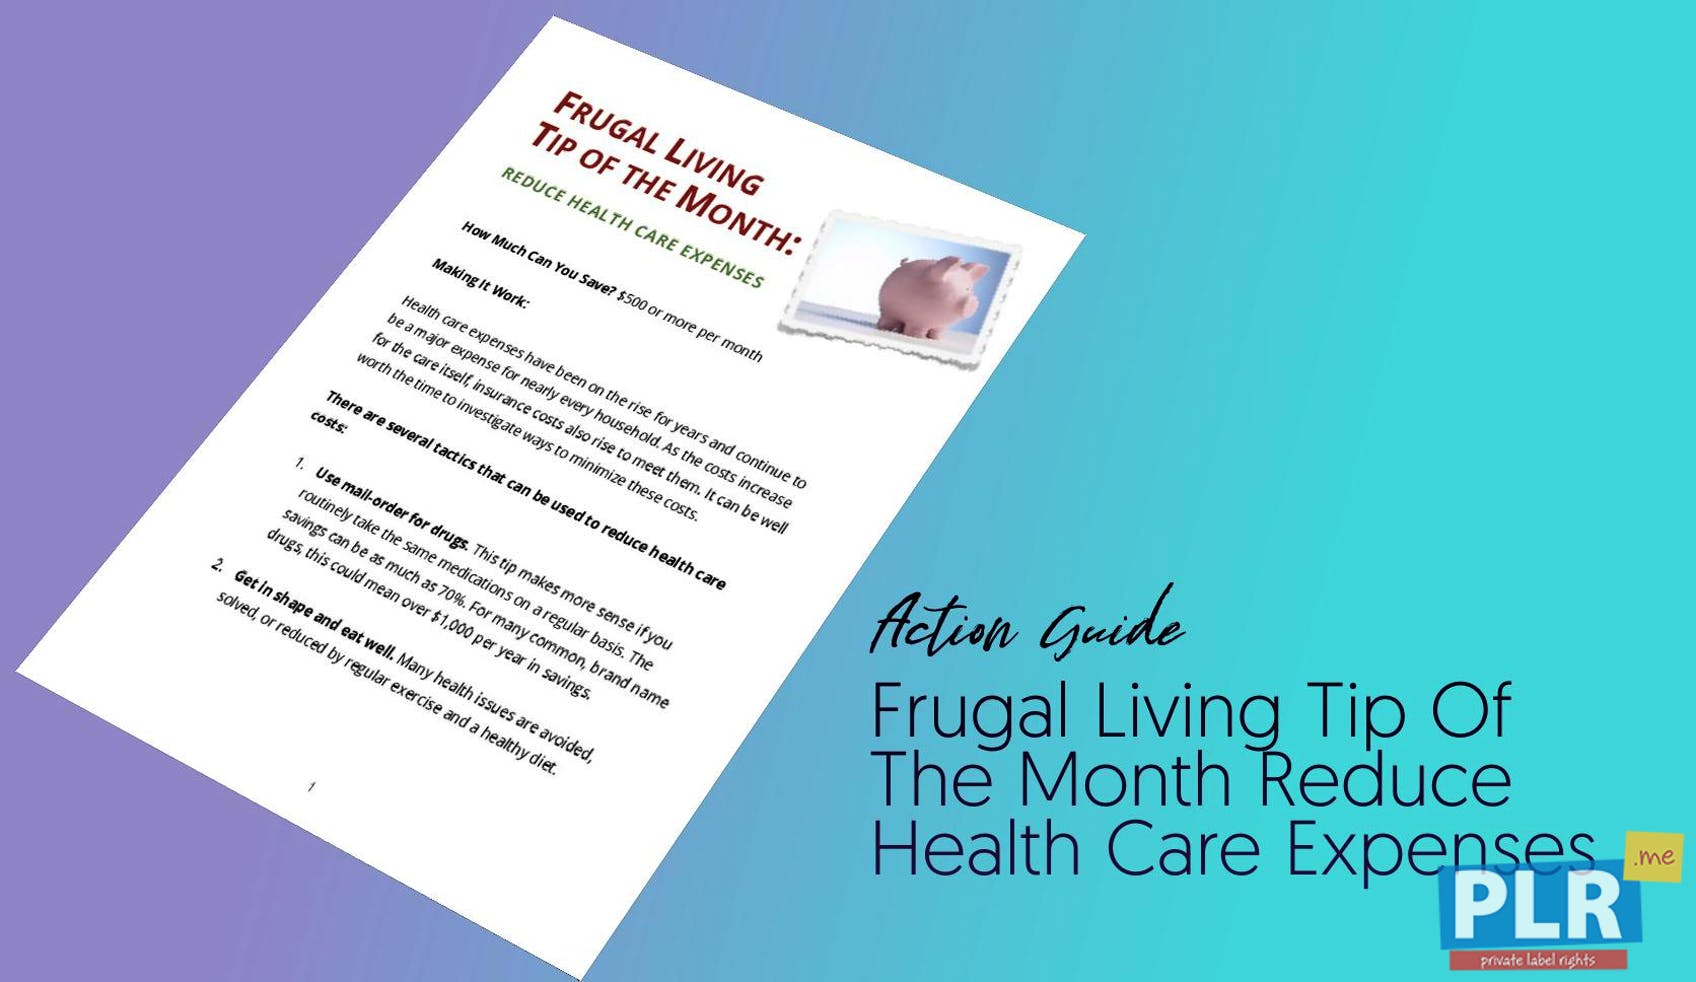 Frugal Living Tip Of The Month Reduce Health Care Expenses